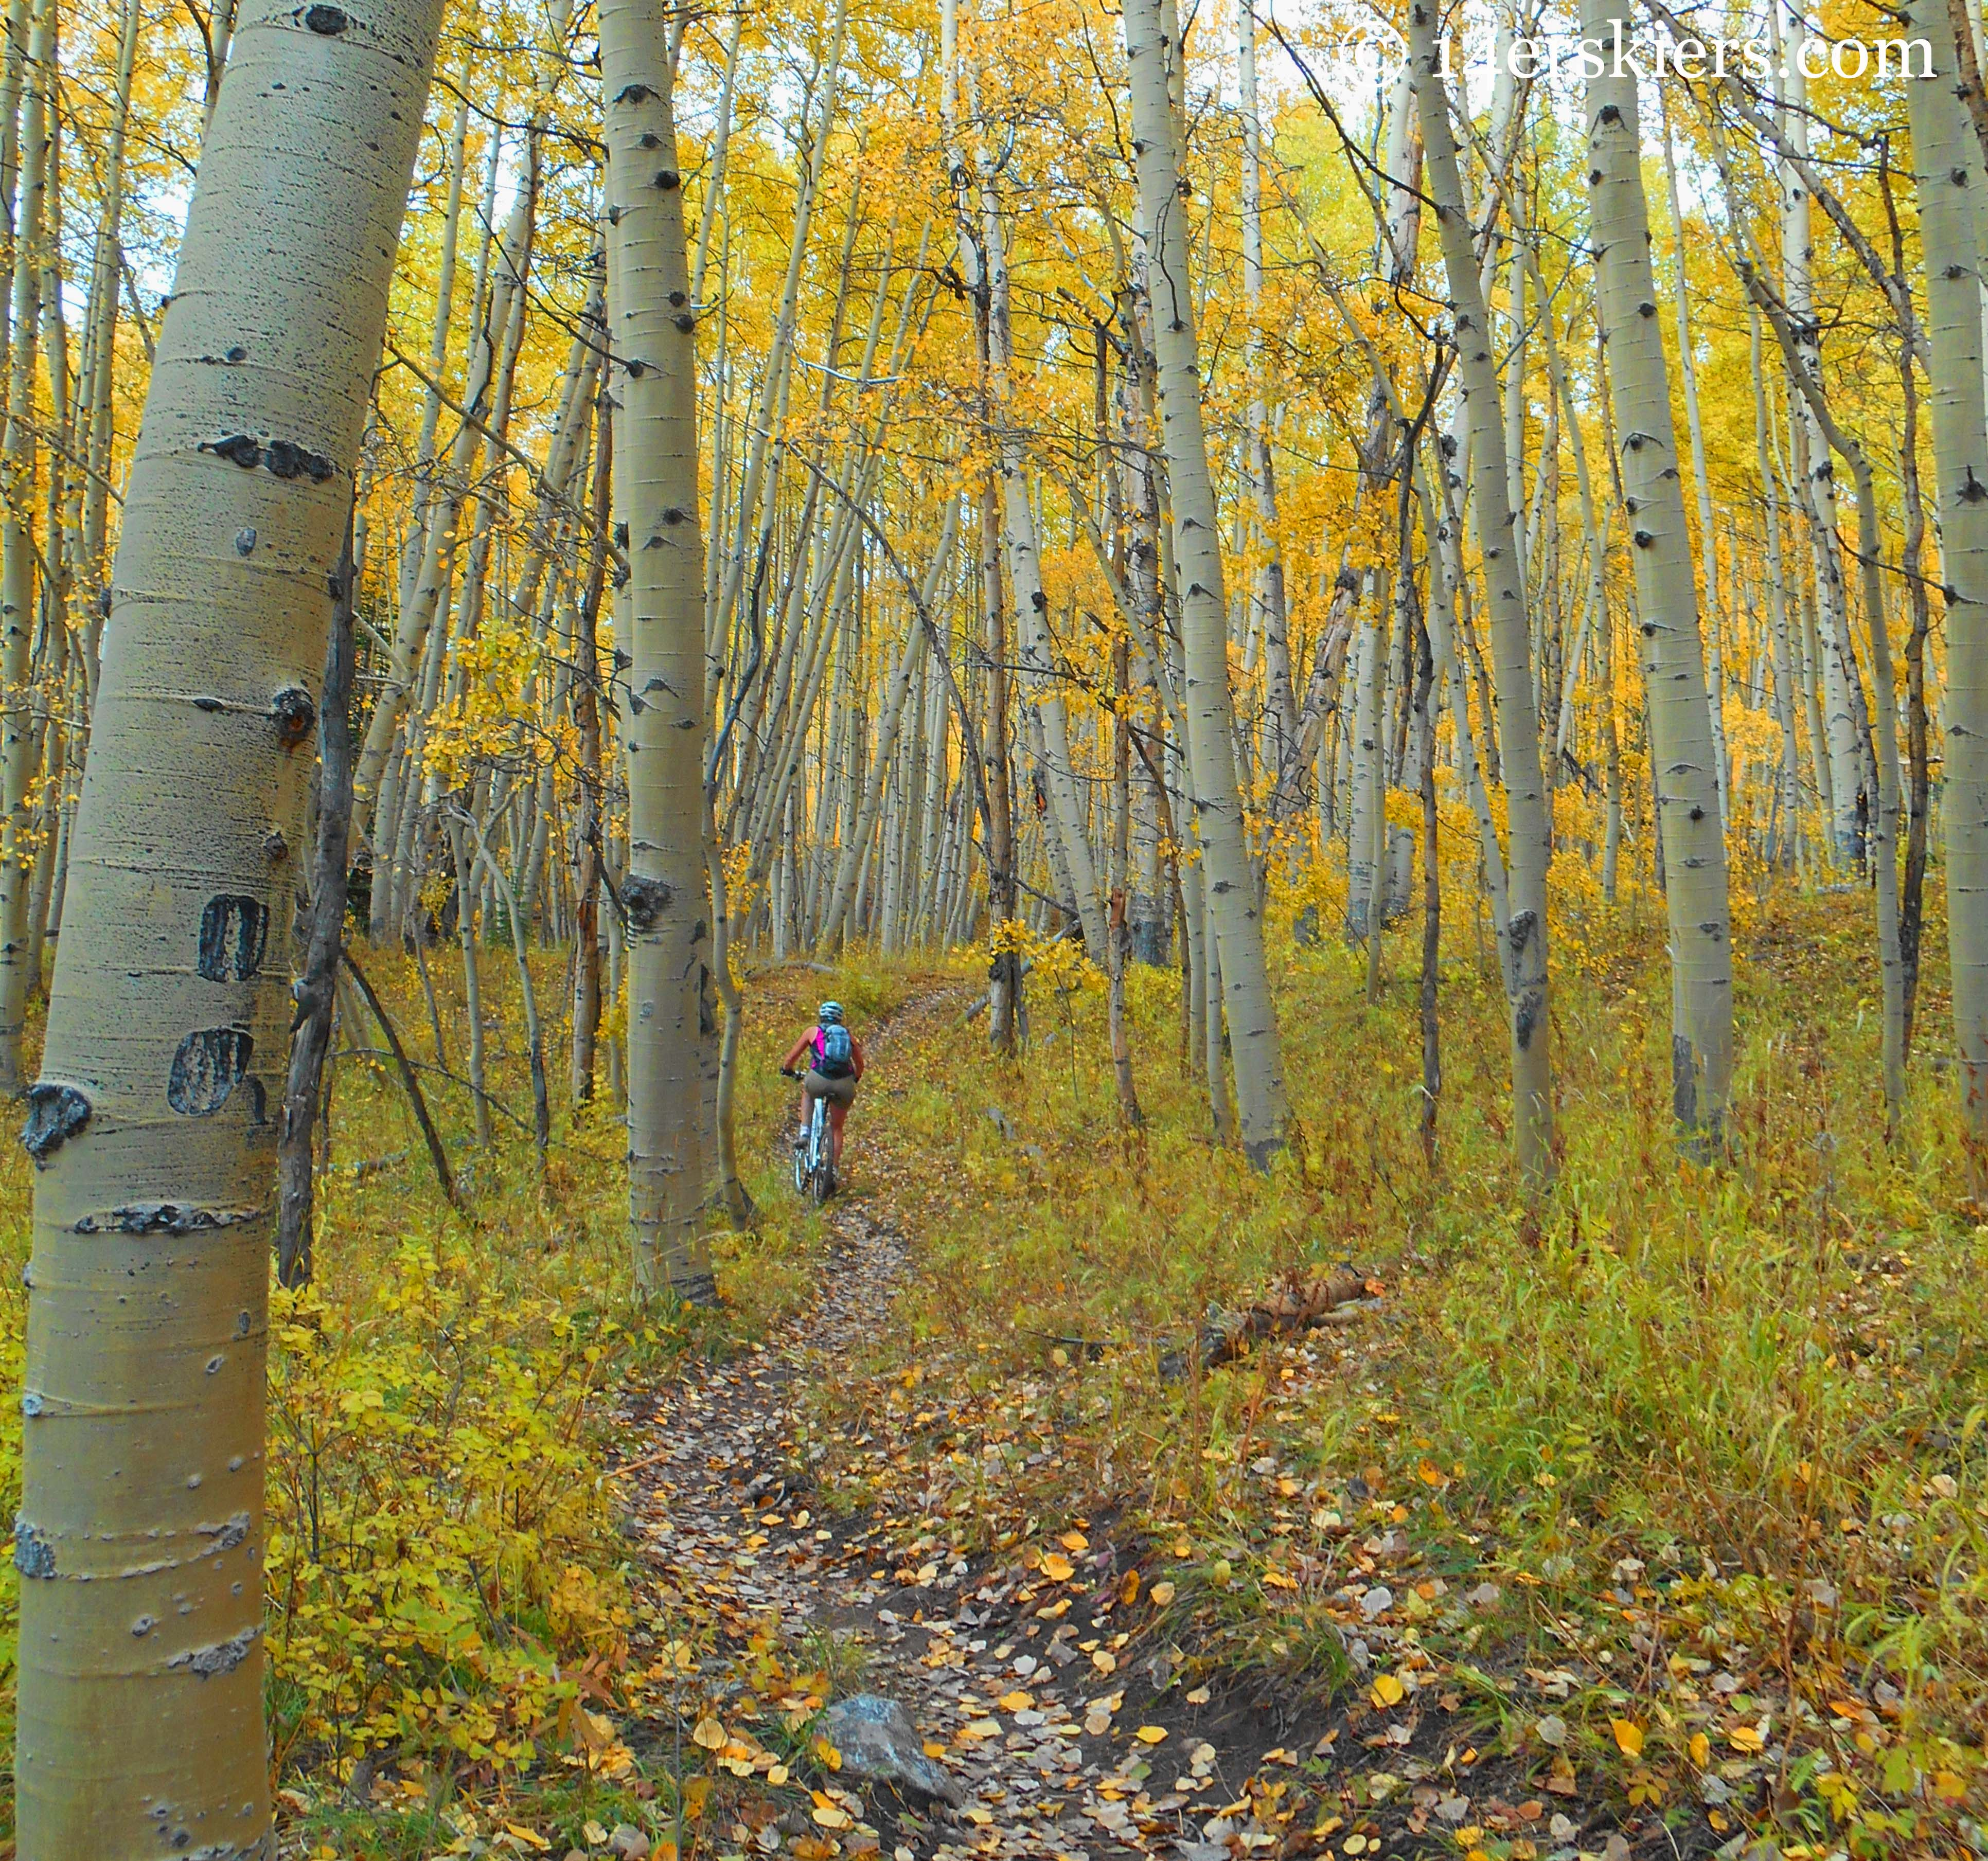 Susan Mol during a fall ride on the Dyke Trail in Crested Butte, CO